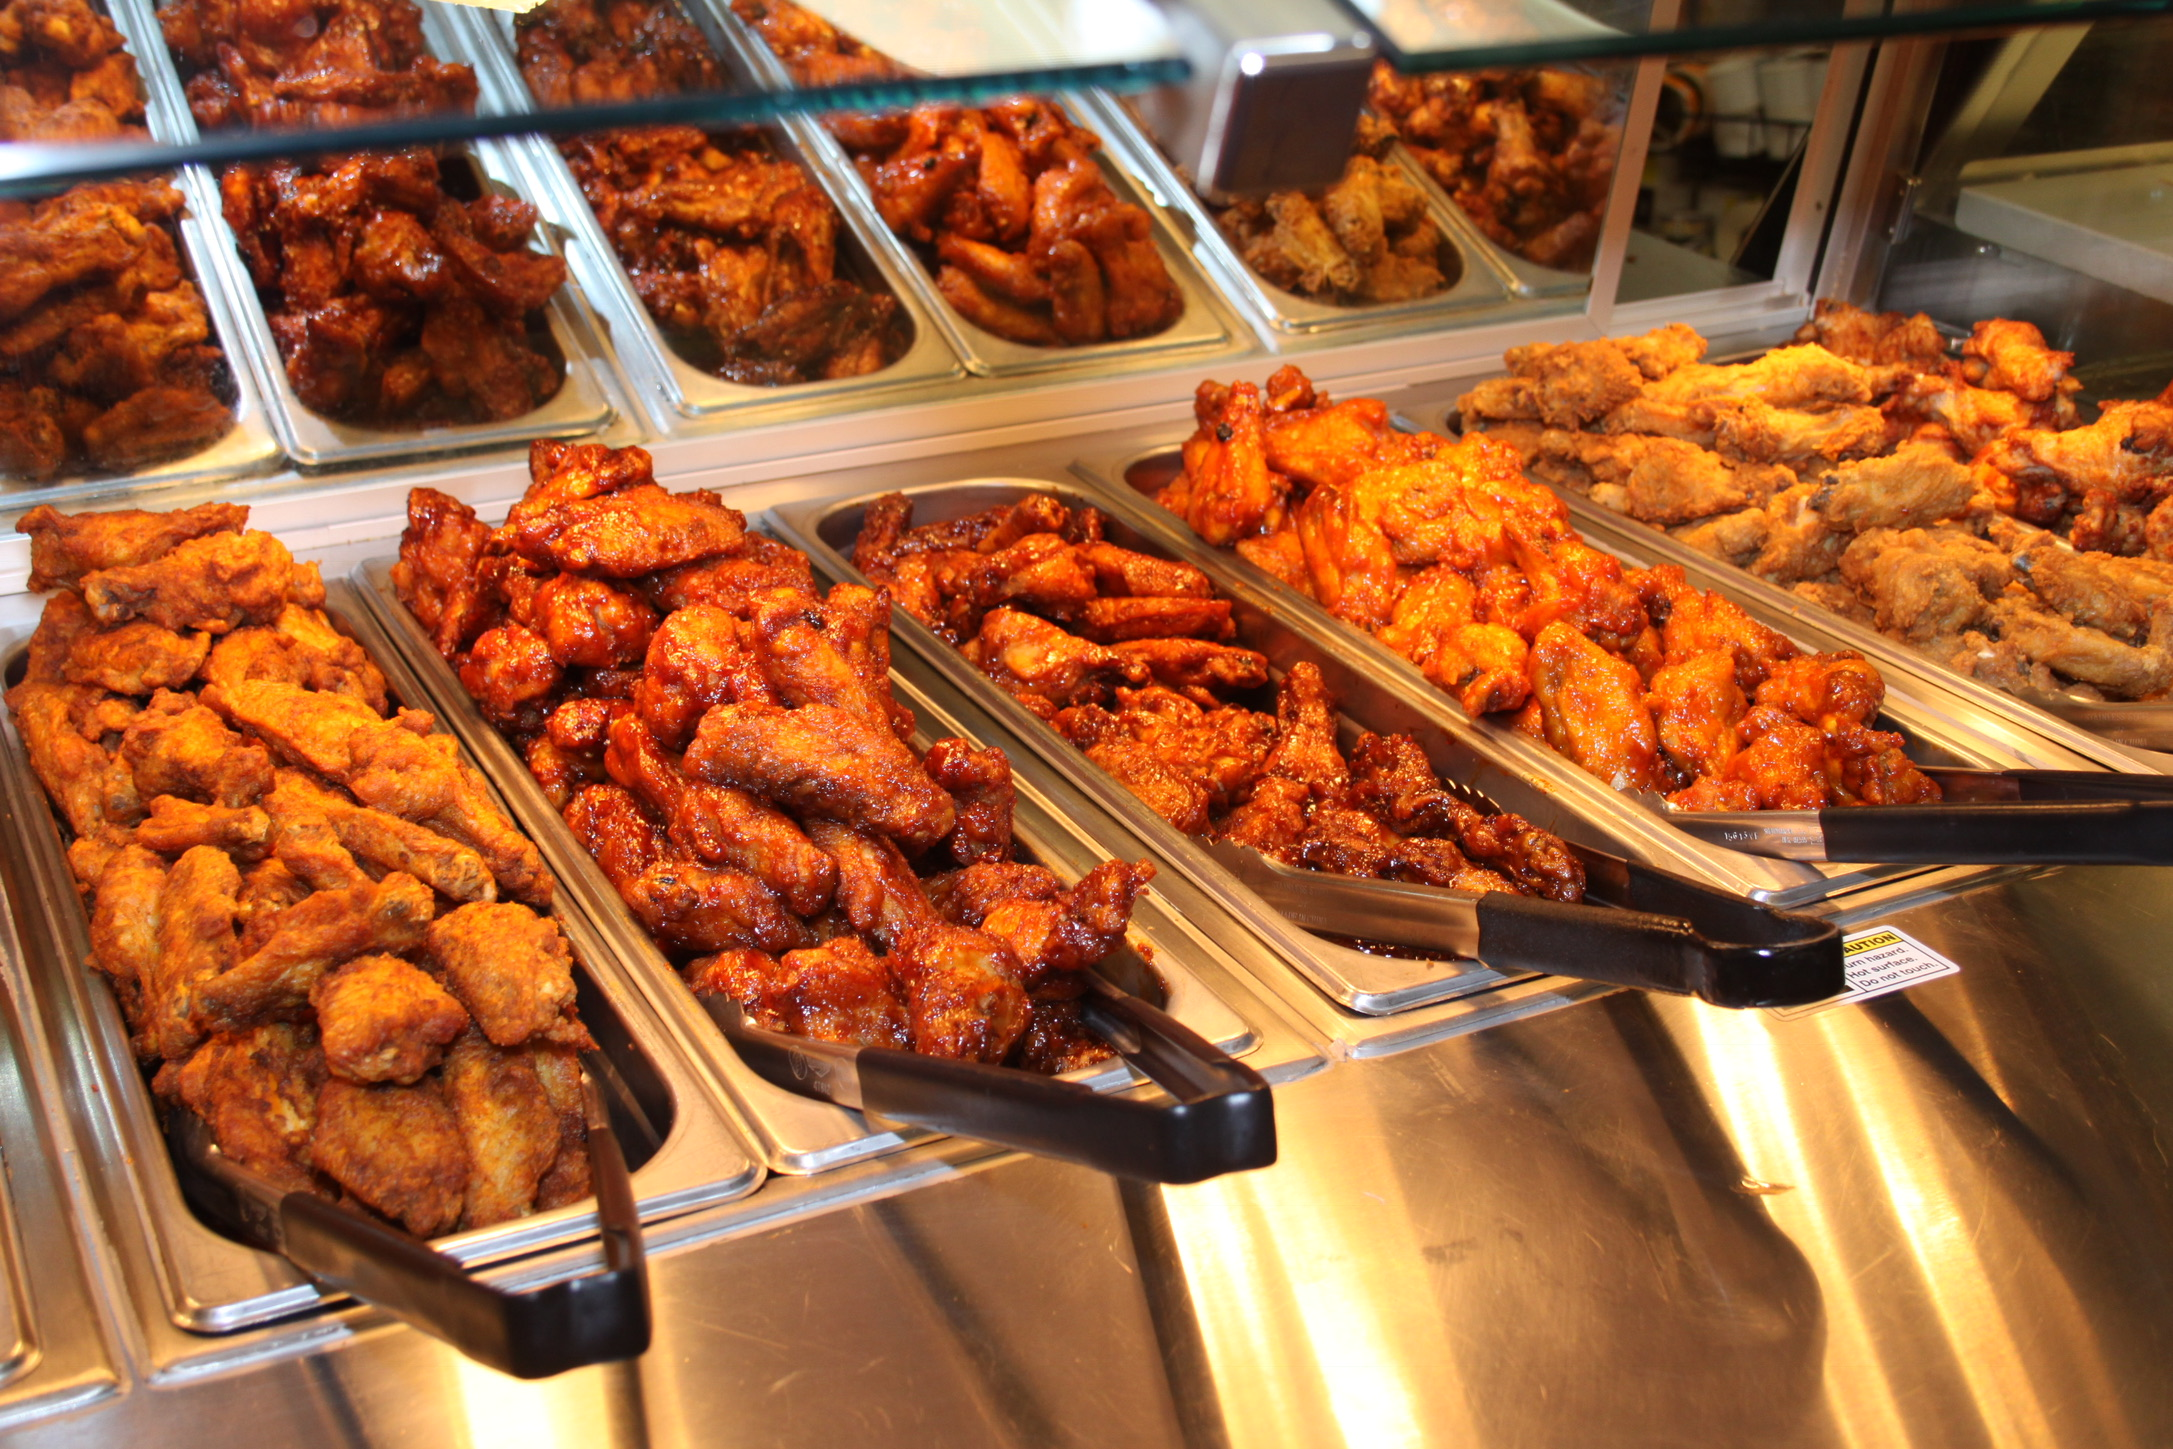 Winn dixie s wing bar winn dixie boca raton jeff eats for Sports bars palm beach gardens